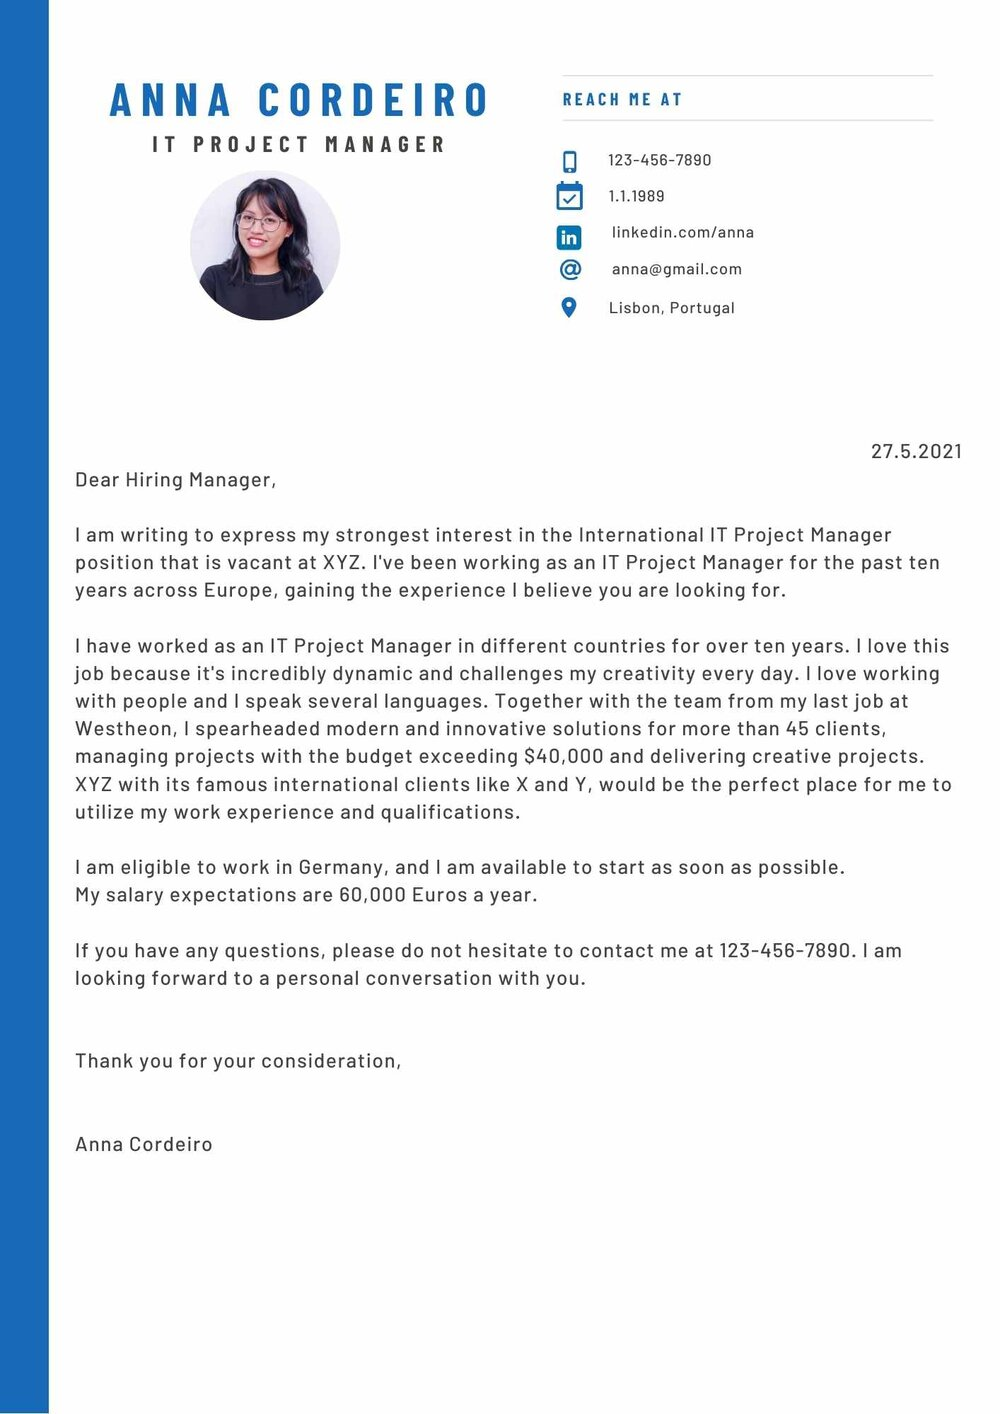 Get Fantastic How To Write Cover Letter With Salary Requirements  You Must Know